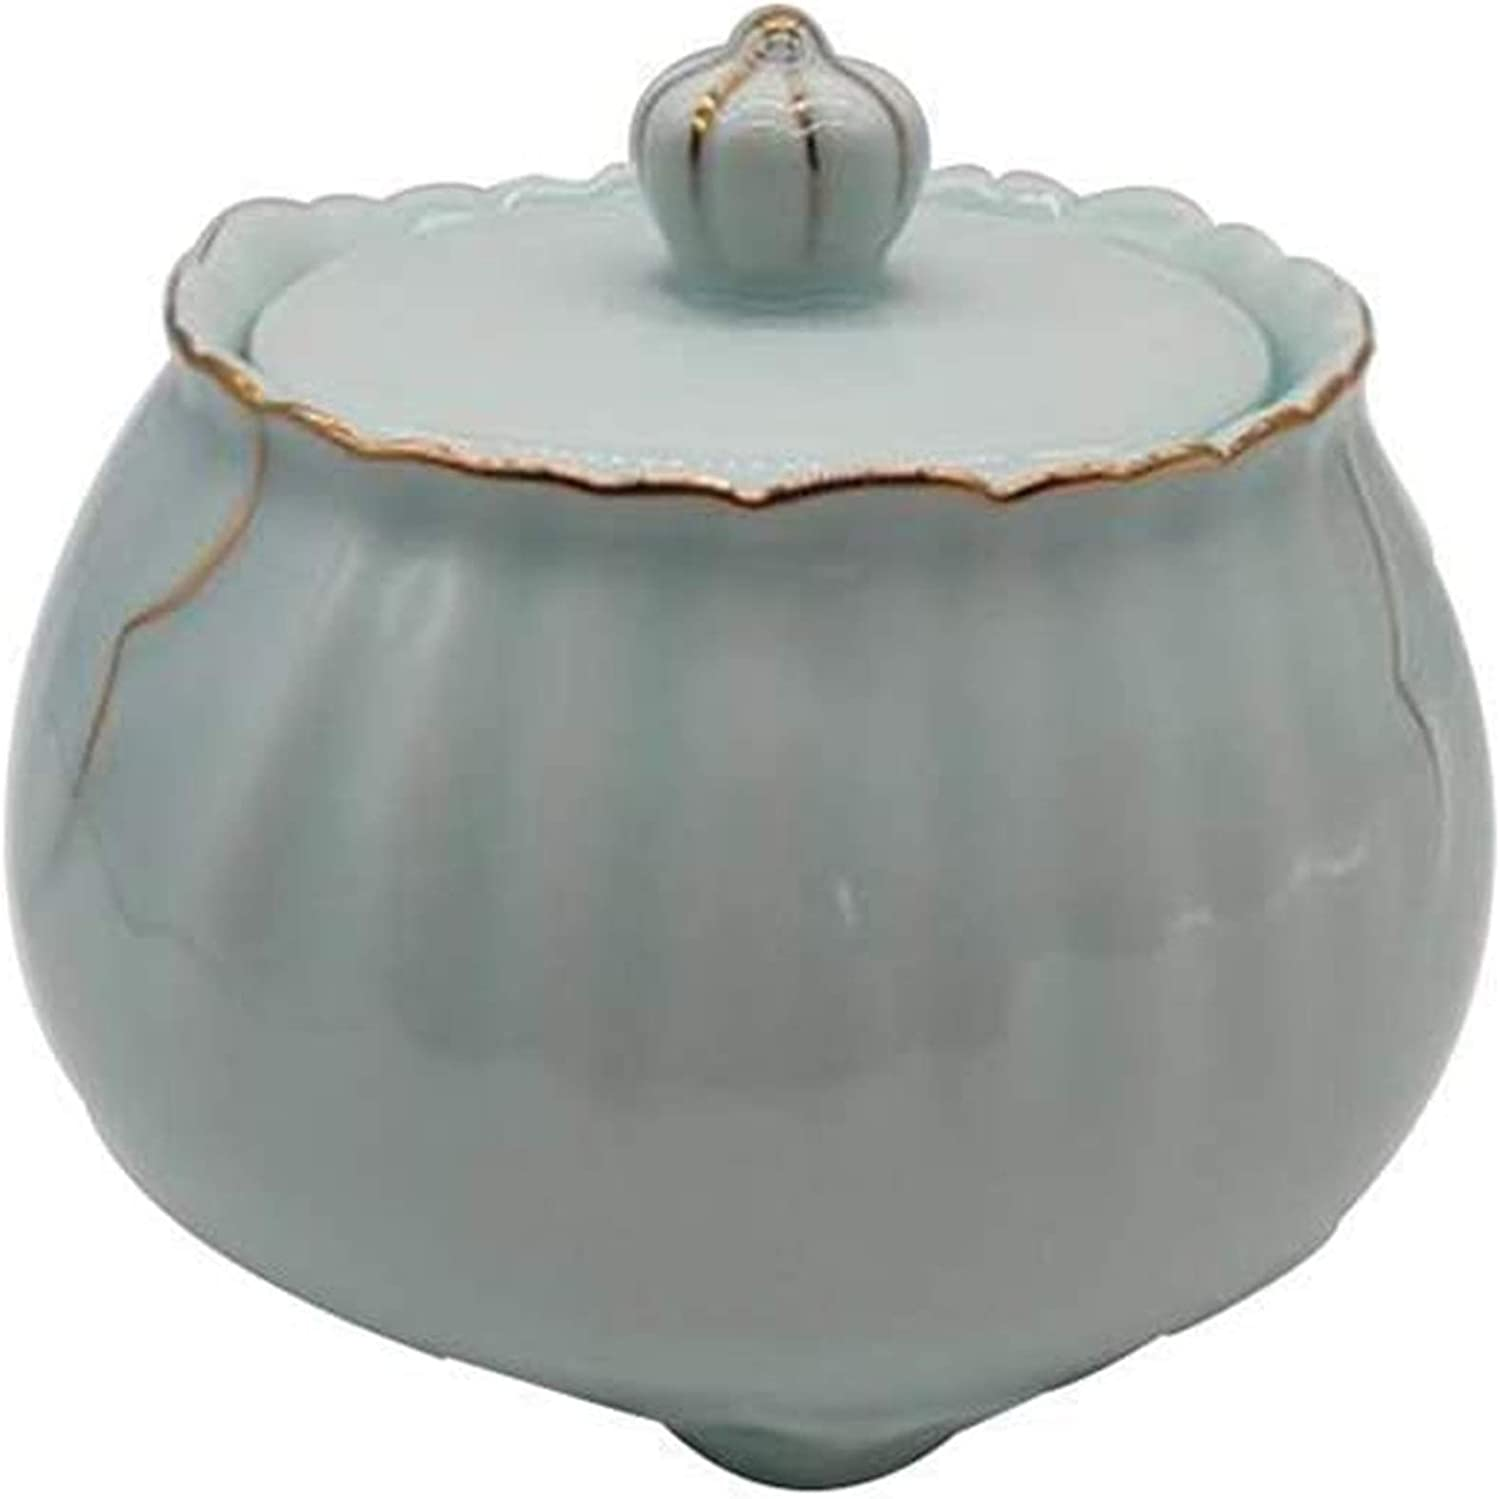 lpzsmd Beauty products Urns for Ashes Dogs Human Urn La Under blast sales